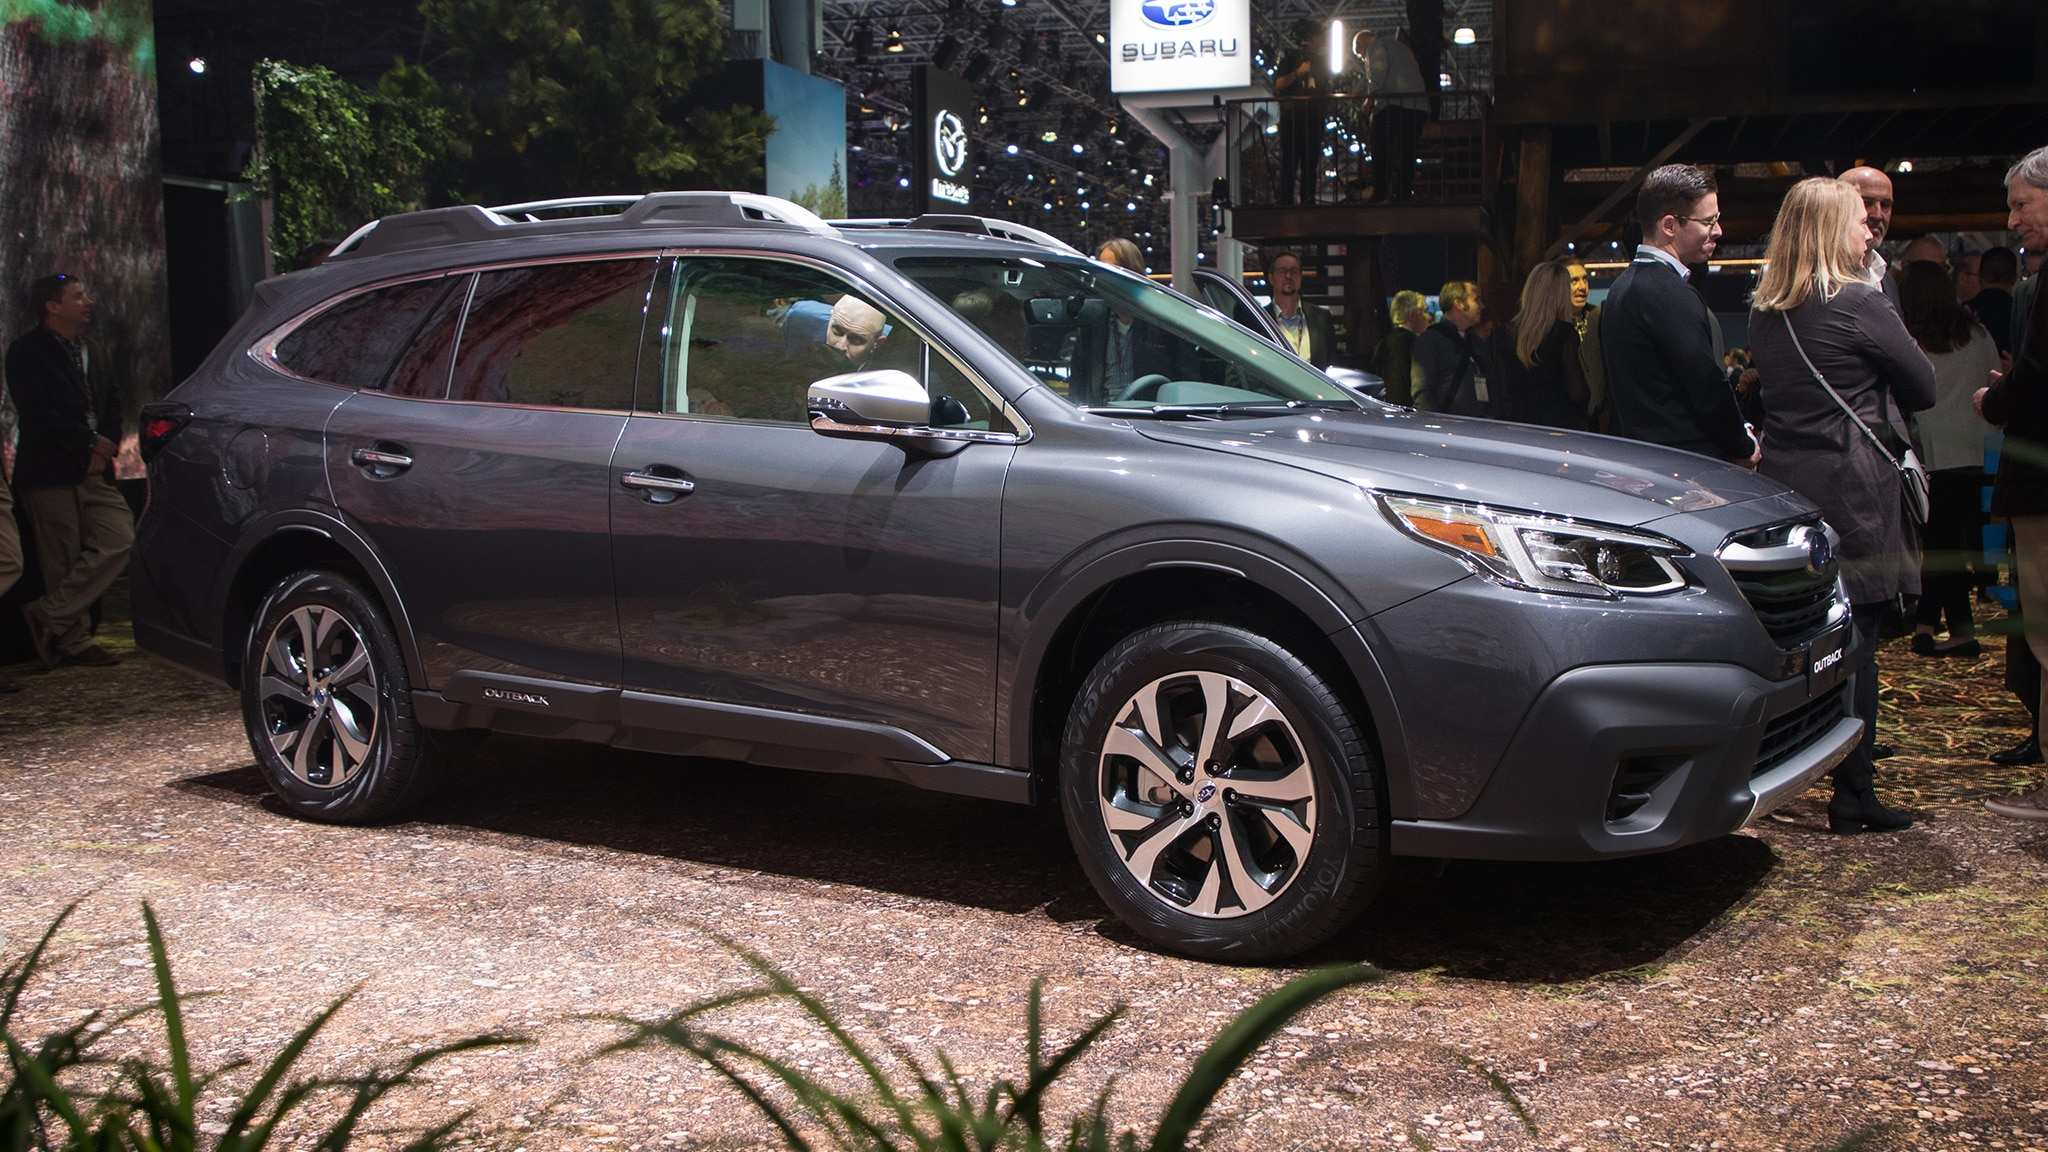 78 Gallery of 2020 Subaru Outback Photos Price and Review with 2020 Subaru Outback Photos